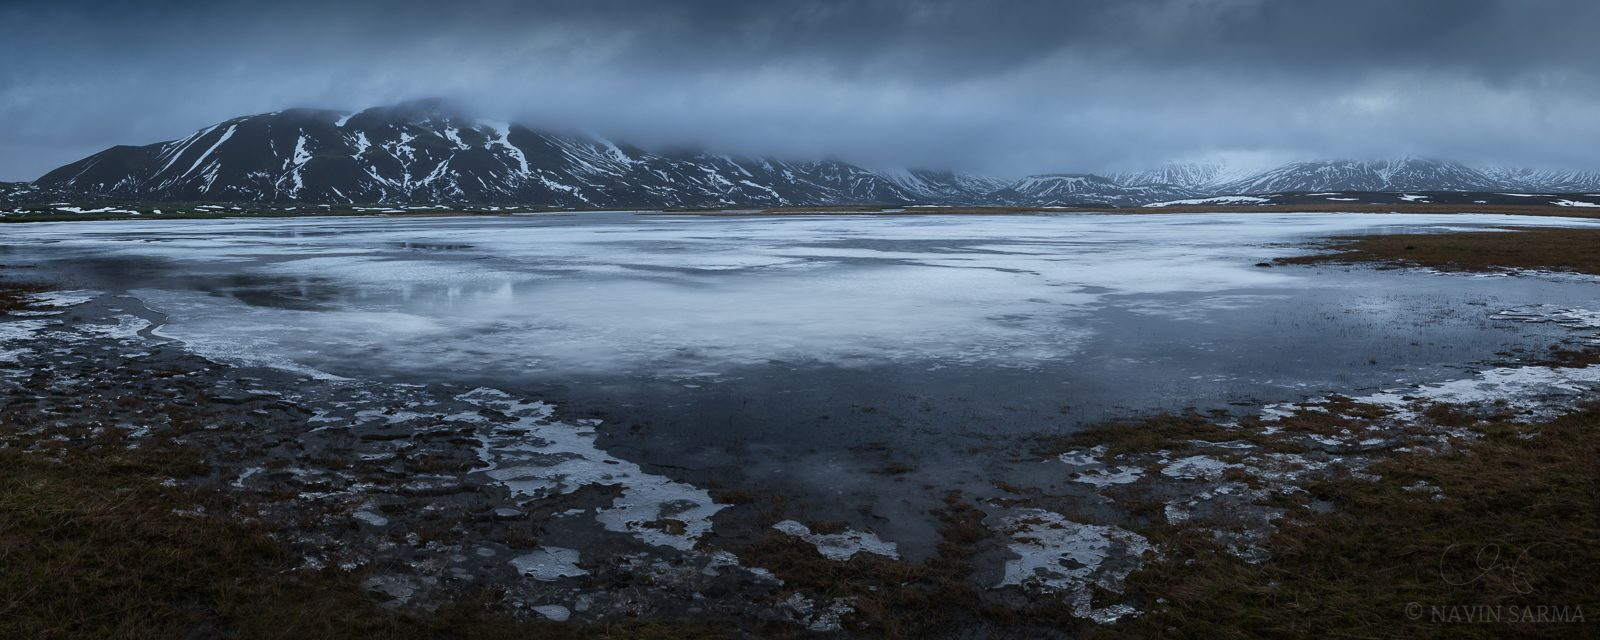 Moody Mountaintops - Overcast skies cover the peeks of massive mountains above a frozen lake in east Iceland